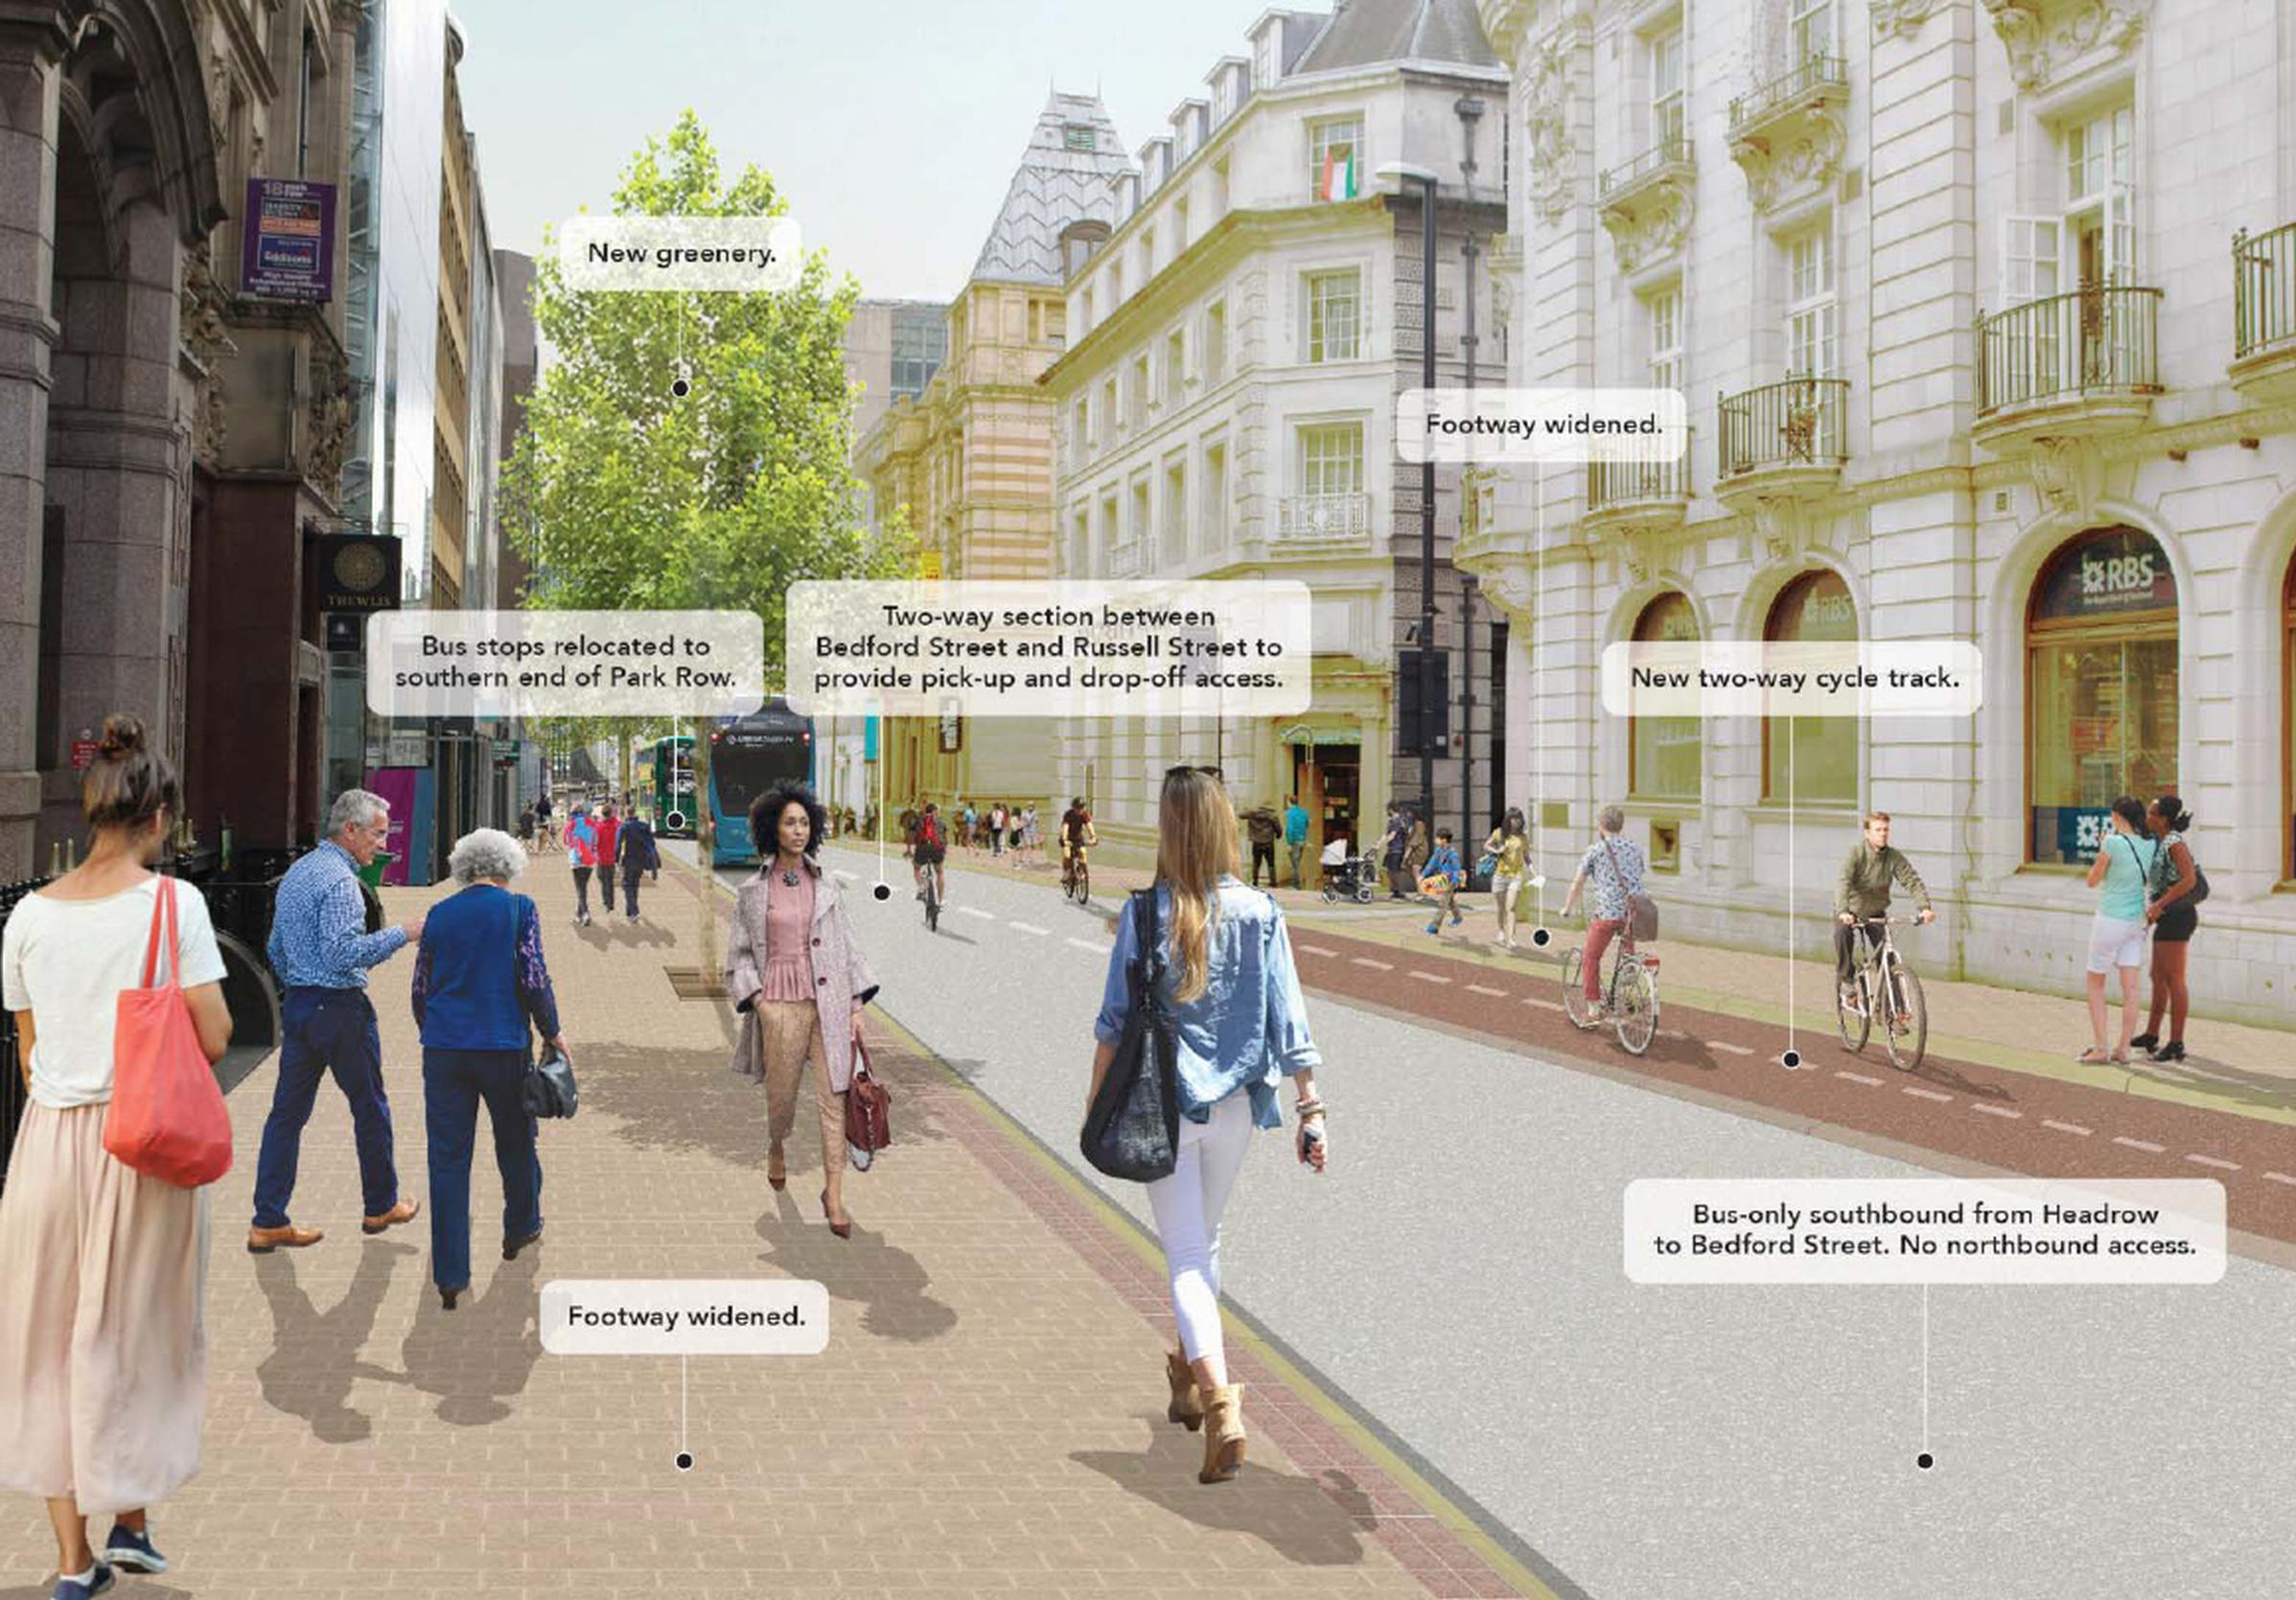 Research will inform monetised values for schemes that improve the urban realm, such as these proposals in Leeds